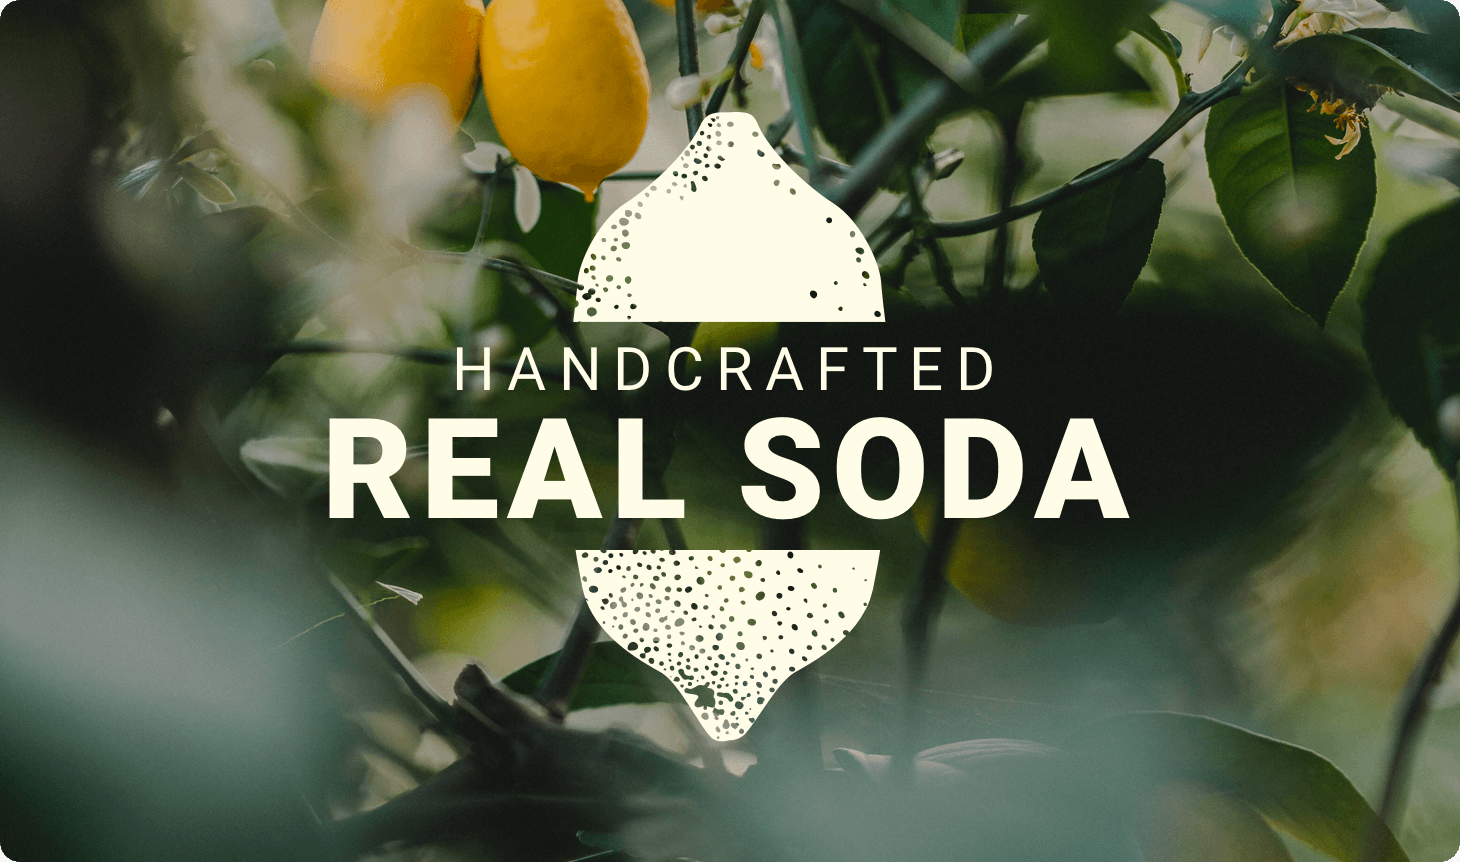 handcrafted real soda